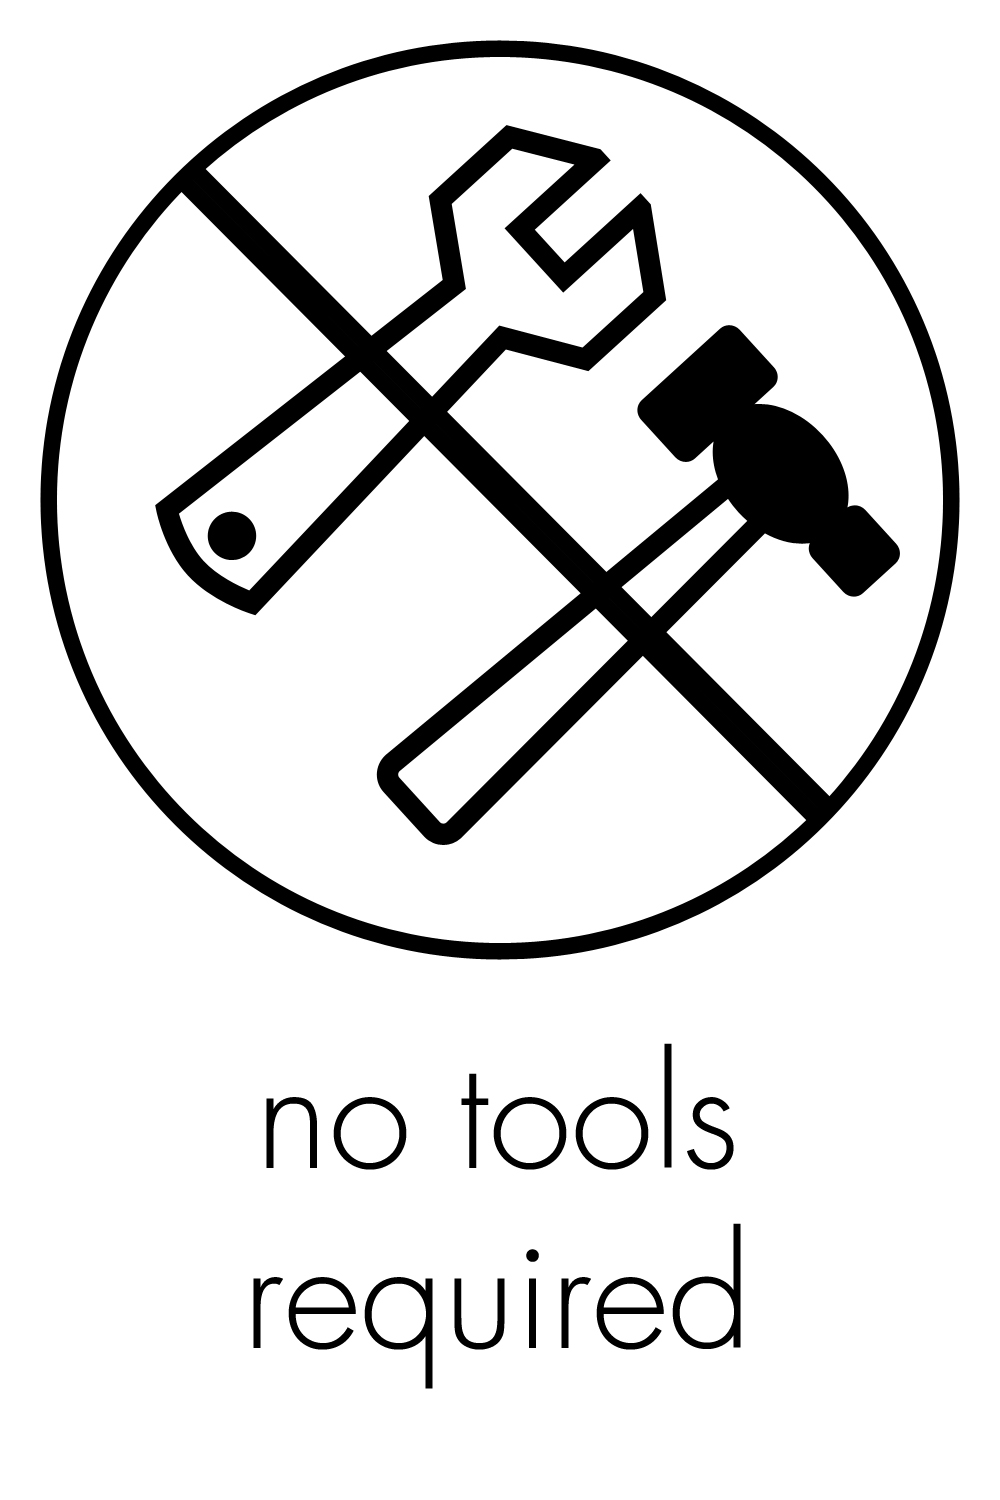 no tools ww.jpg